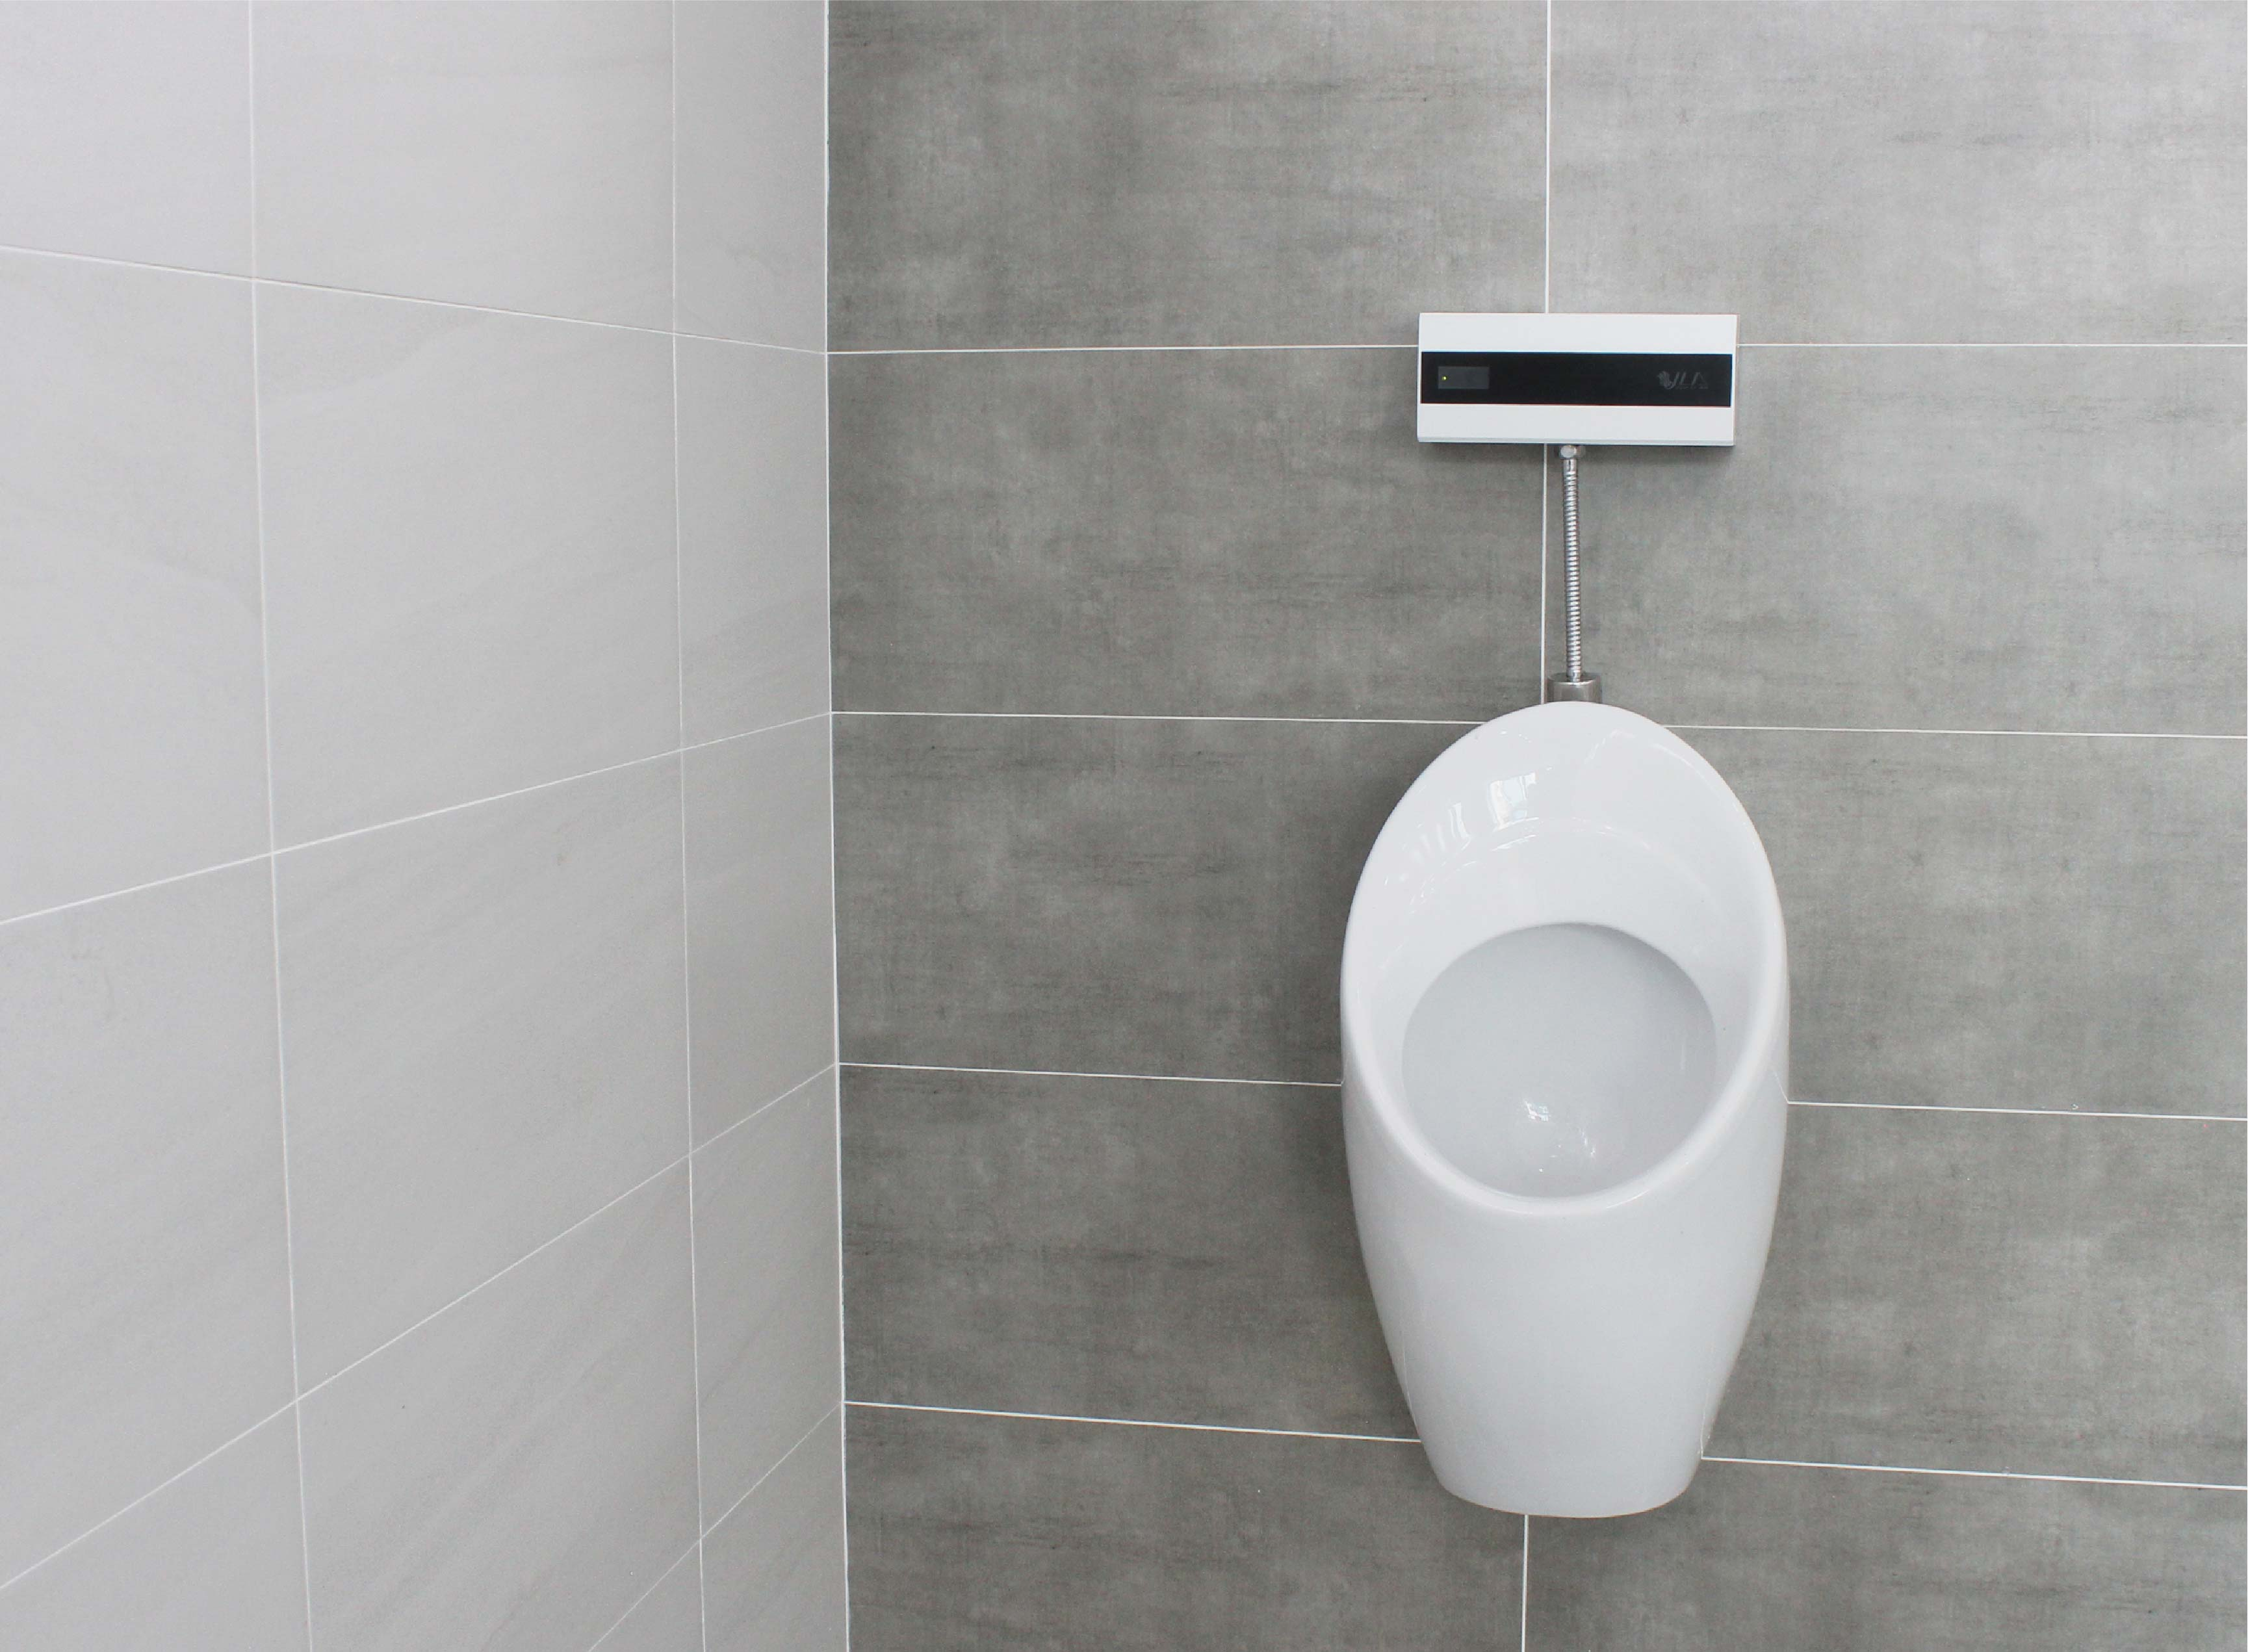 Exposed Automatic Urinal Flusher L-508